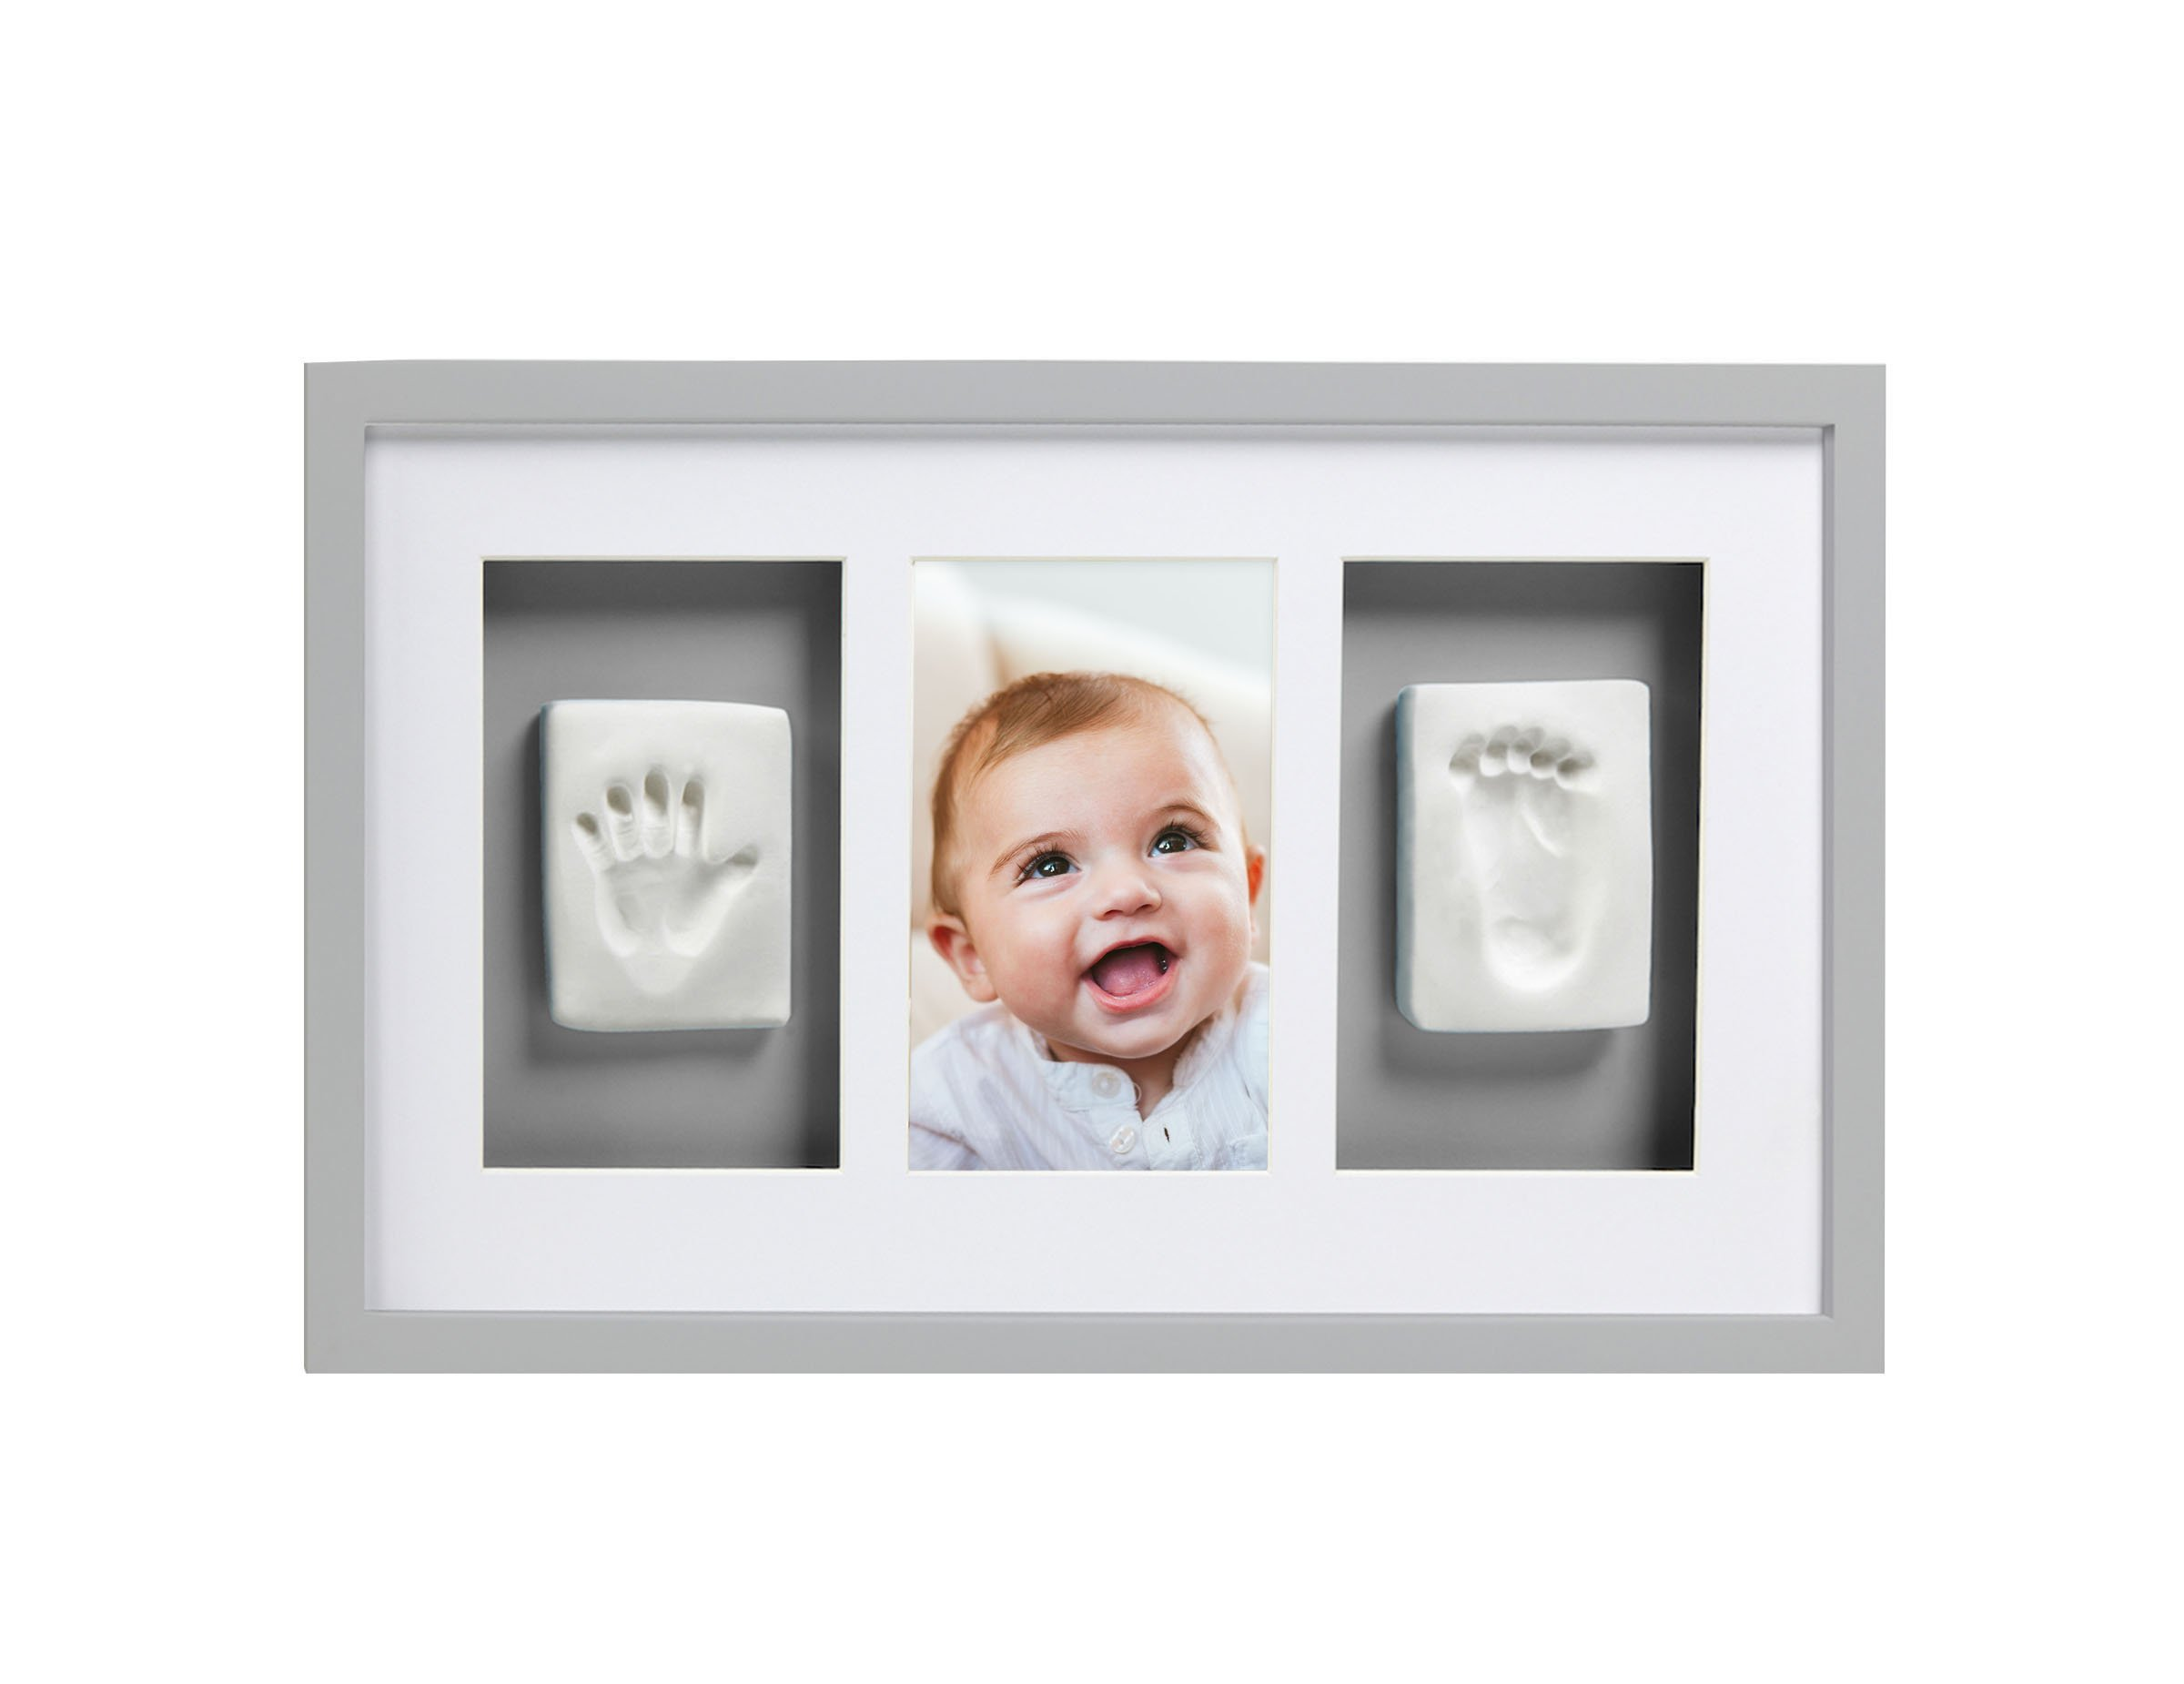 Pearhead Babyprints Newborn Baby Handprint and Footprint Deluxe Wall Photo Frame & Impression Kit, Gray